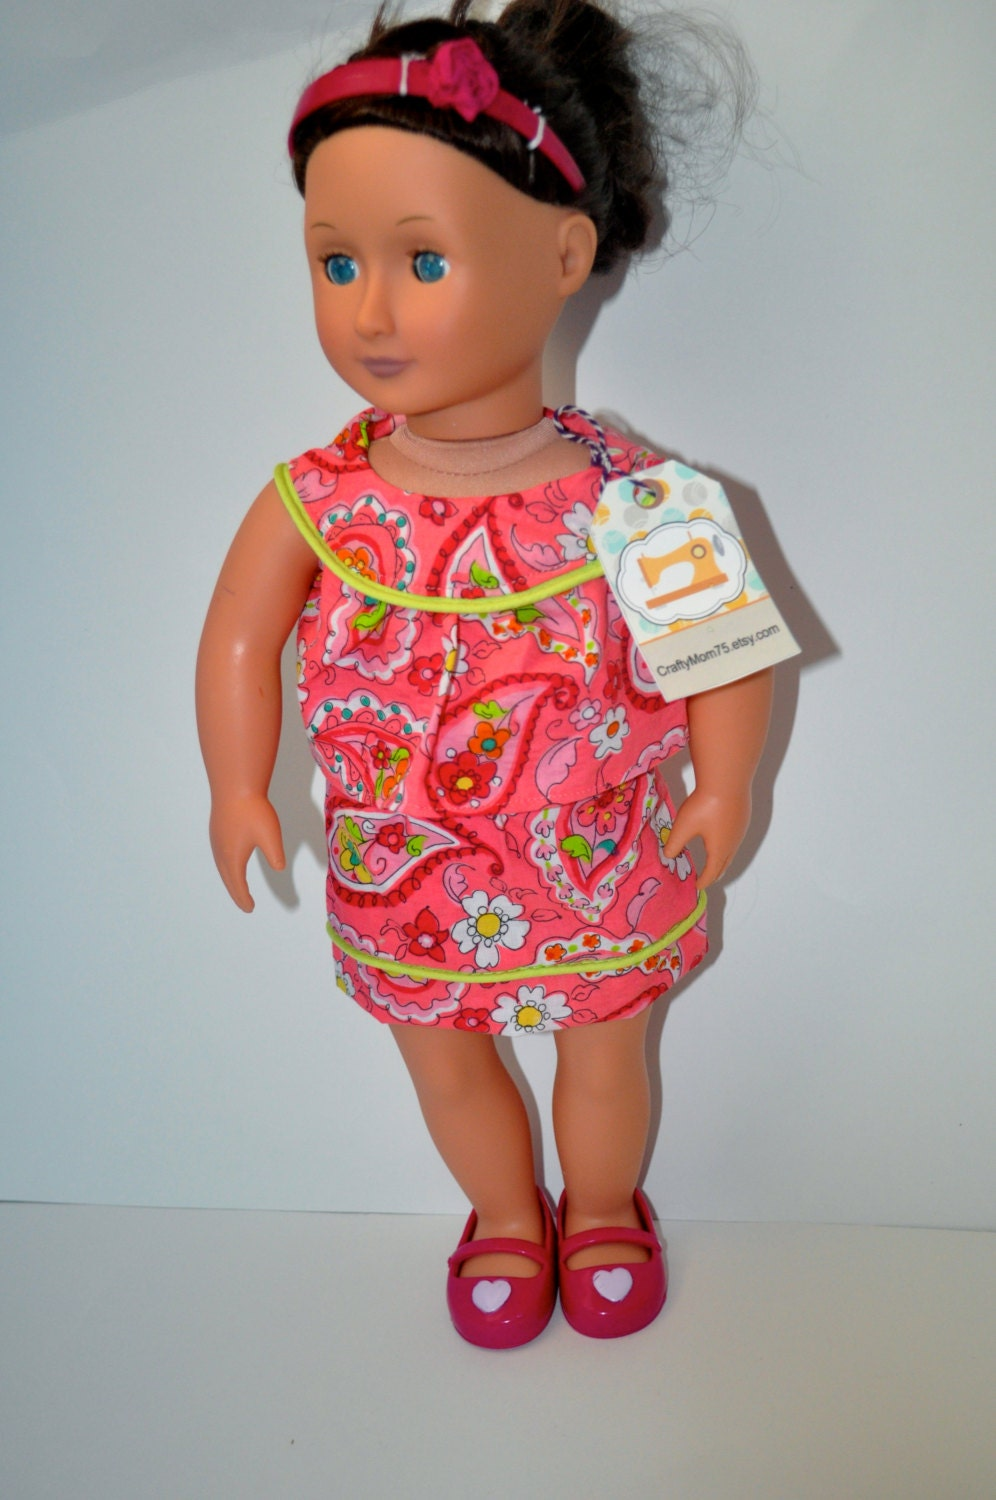 Amazing SALE on clothes for 18 inch dolls like American Girl, Our Generation and Journey needloanbadcredit.cftes, PJ's, Accessories and more. Fast, free shipping on order $50+!